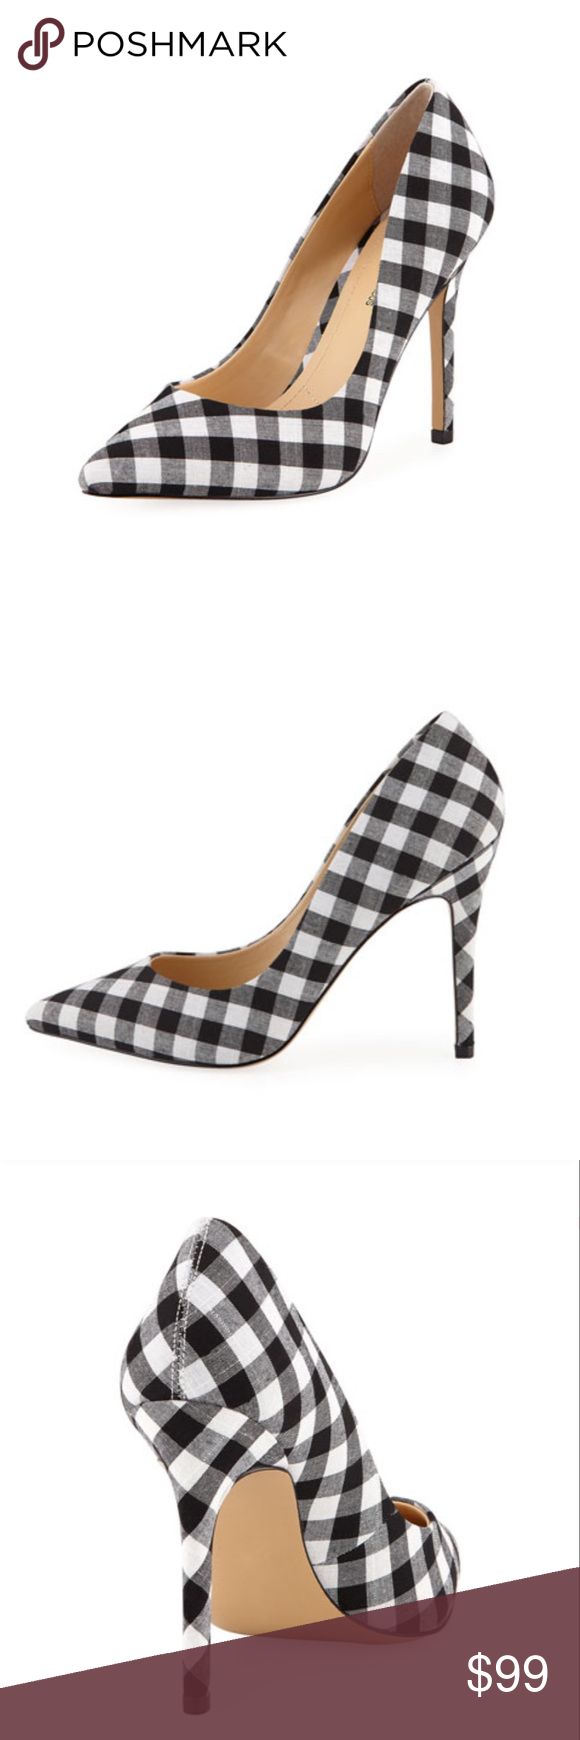 """ef6cc8f6c21 Gingham Pumps 4.2"""" covered stiletto heel. Pointed toe. Slip-on style ..."""